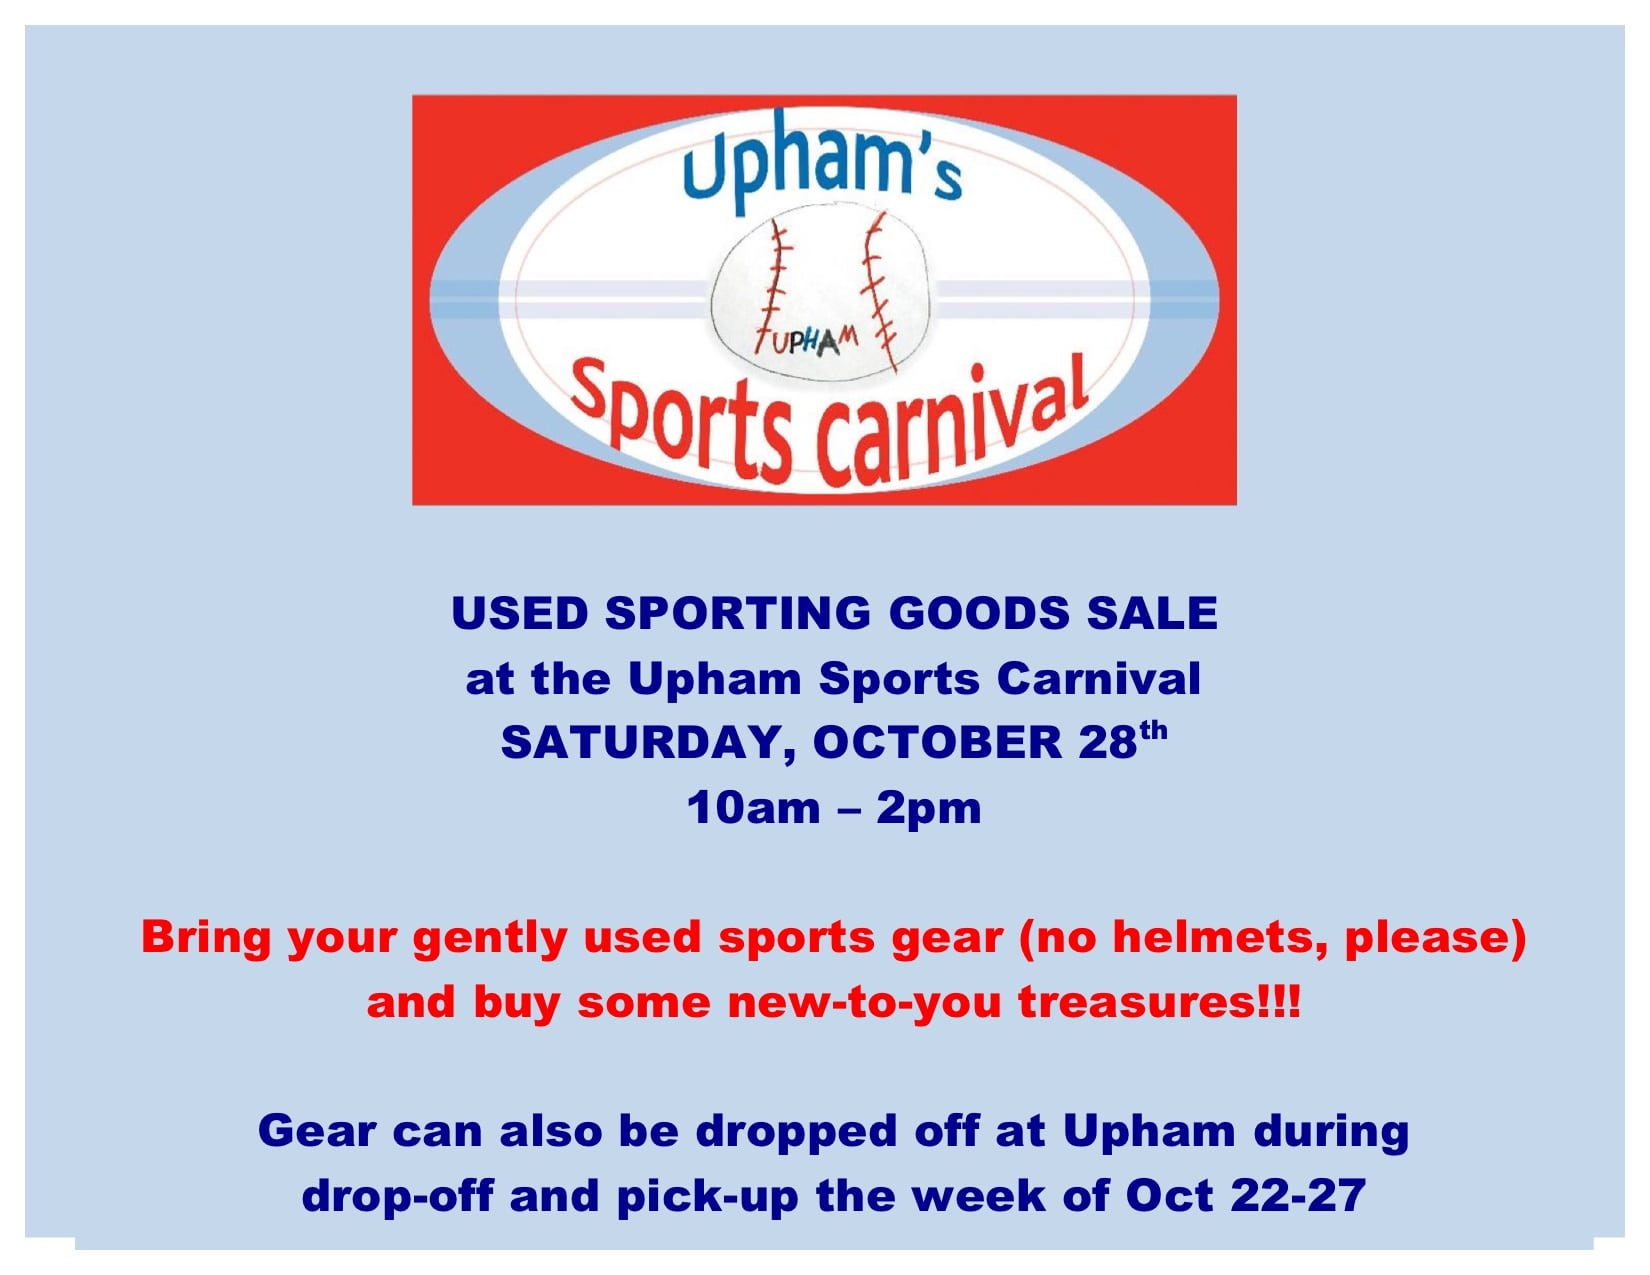 Upham sports carnival